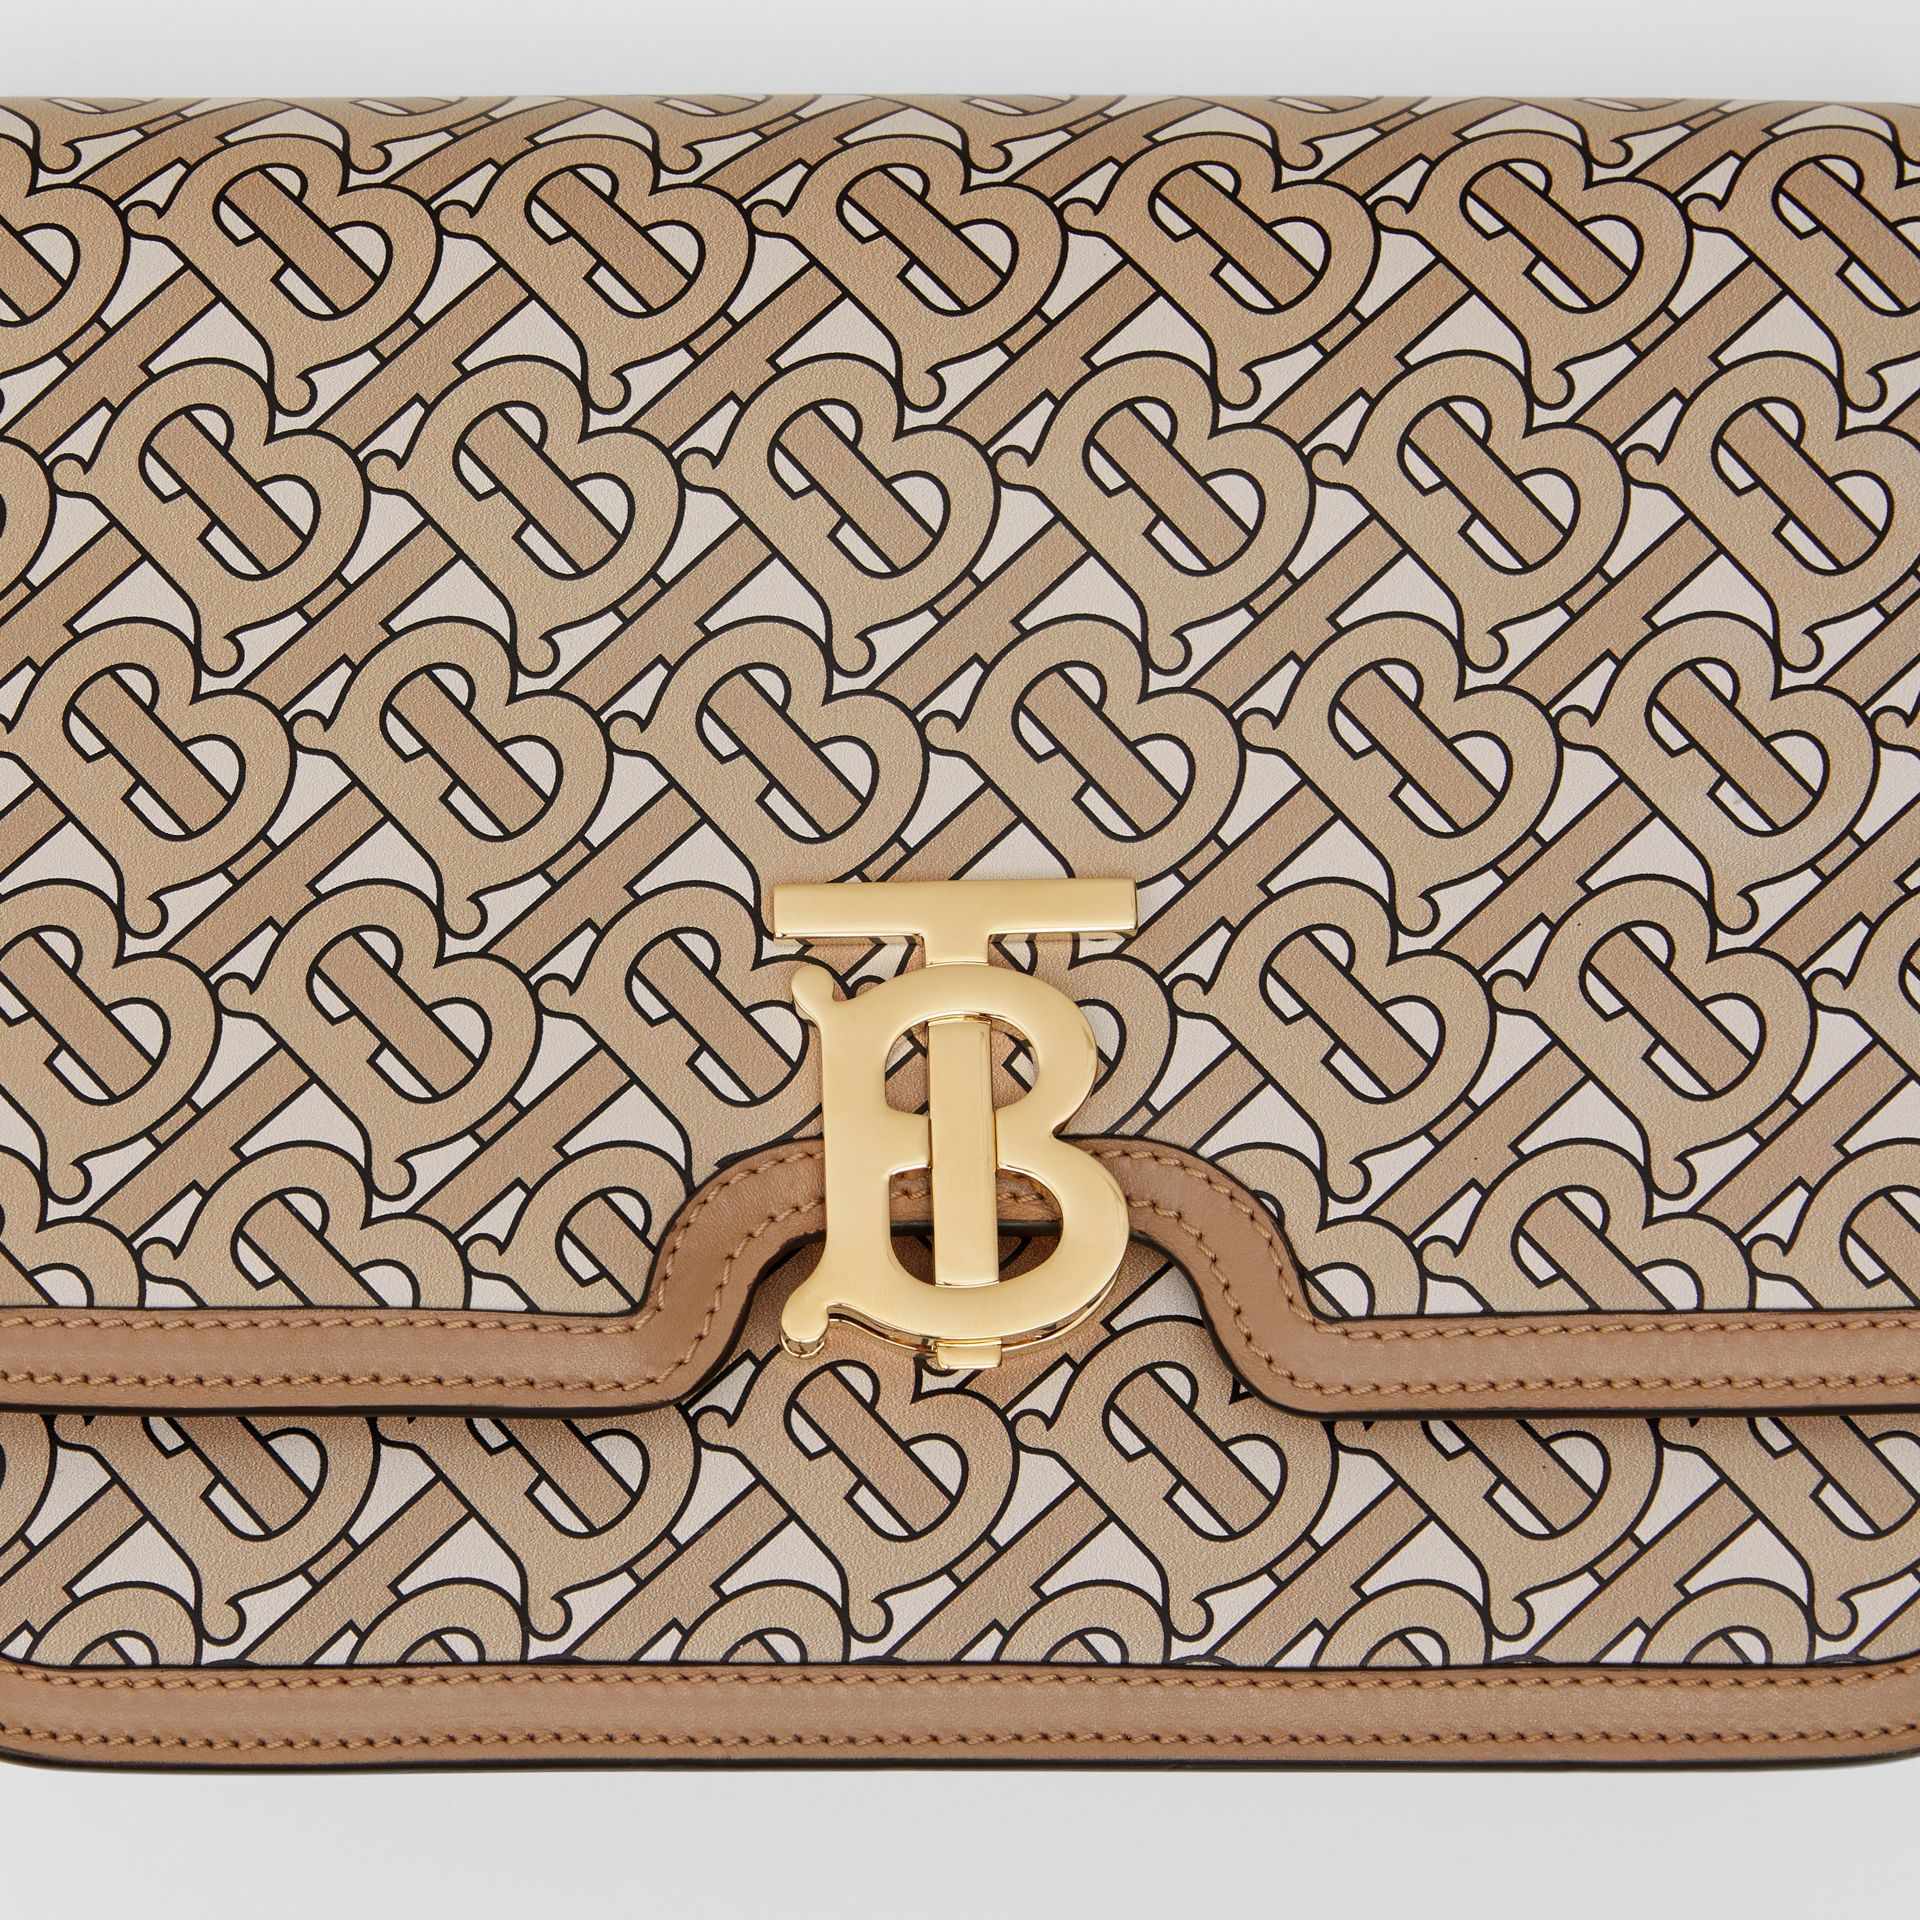 Medium Monogram Print Leather TB Bag in Beige - Women | Burberry - gallery image 1